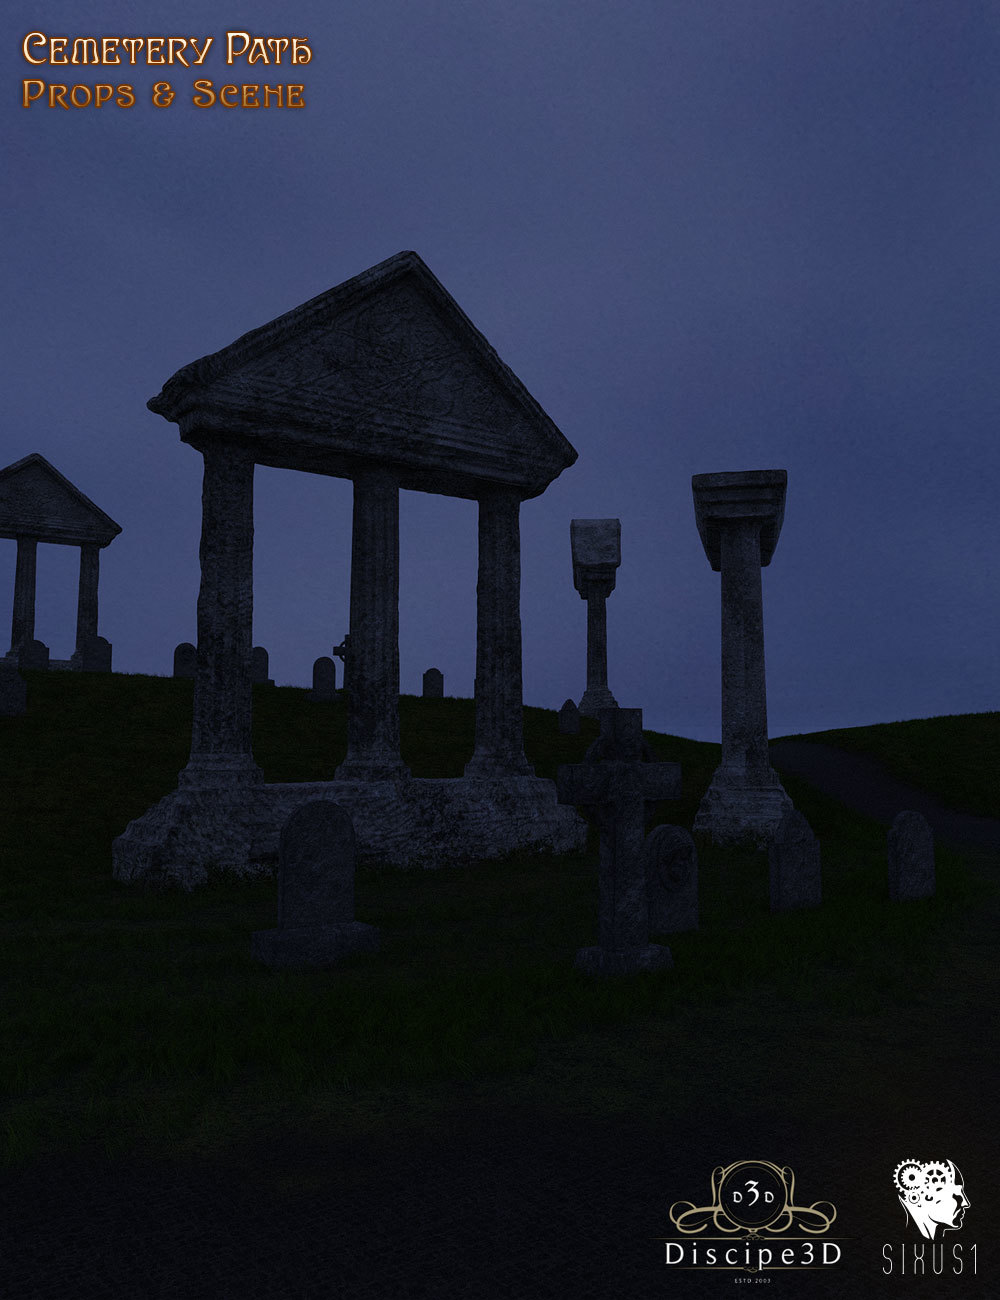 Cemetary Path by Disciple3d